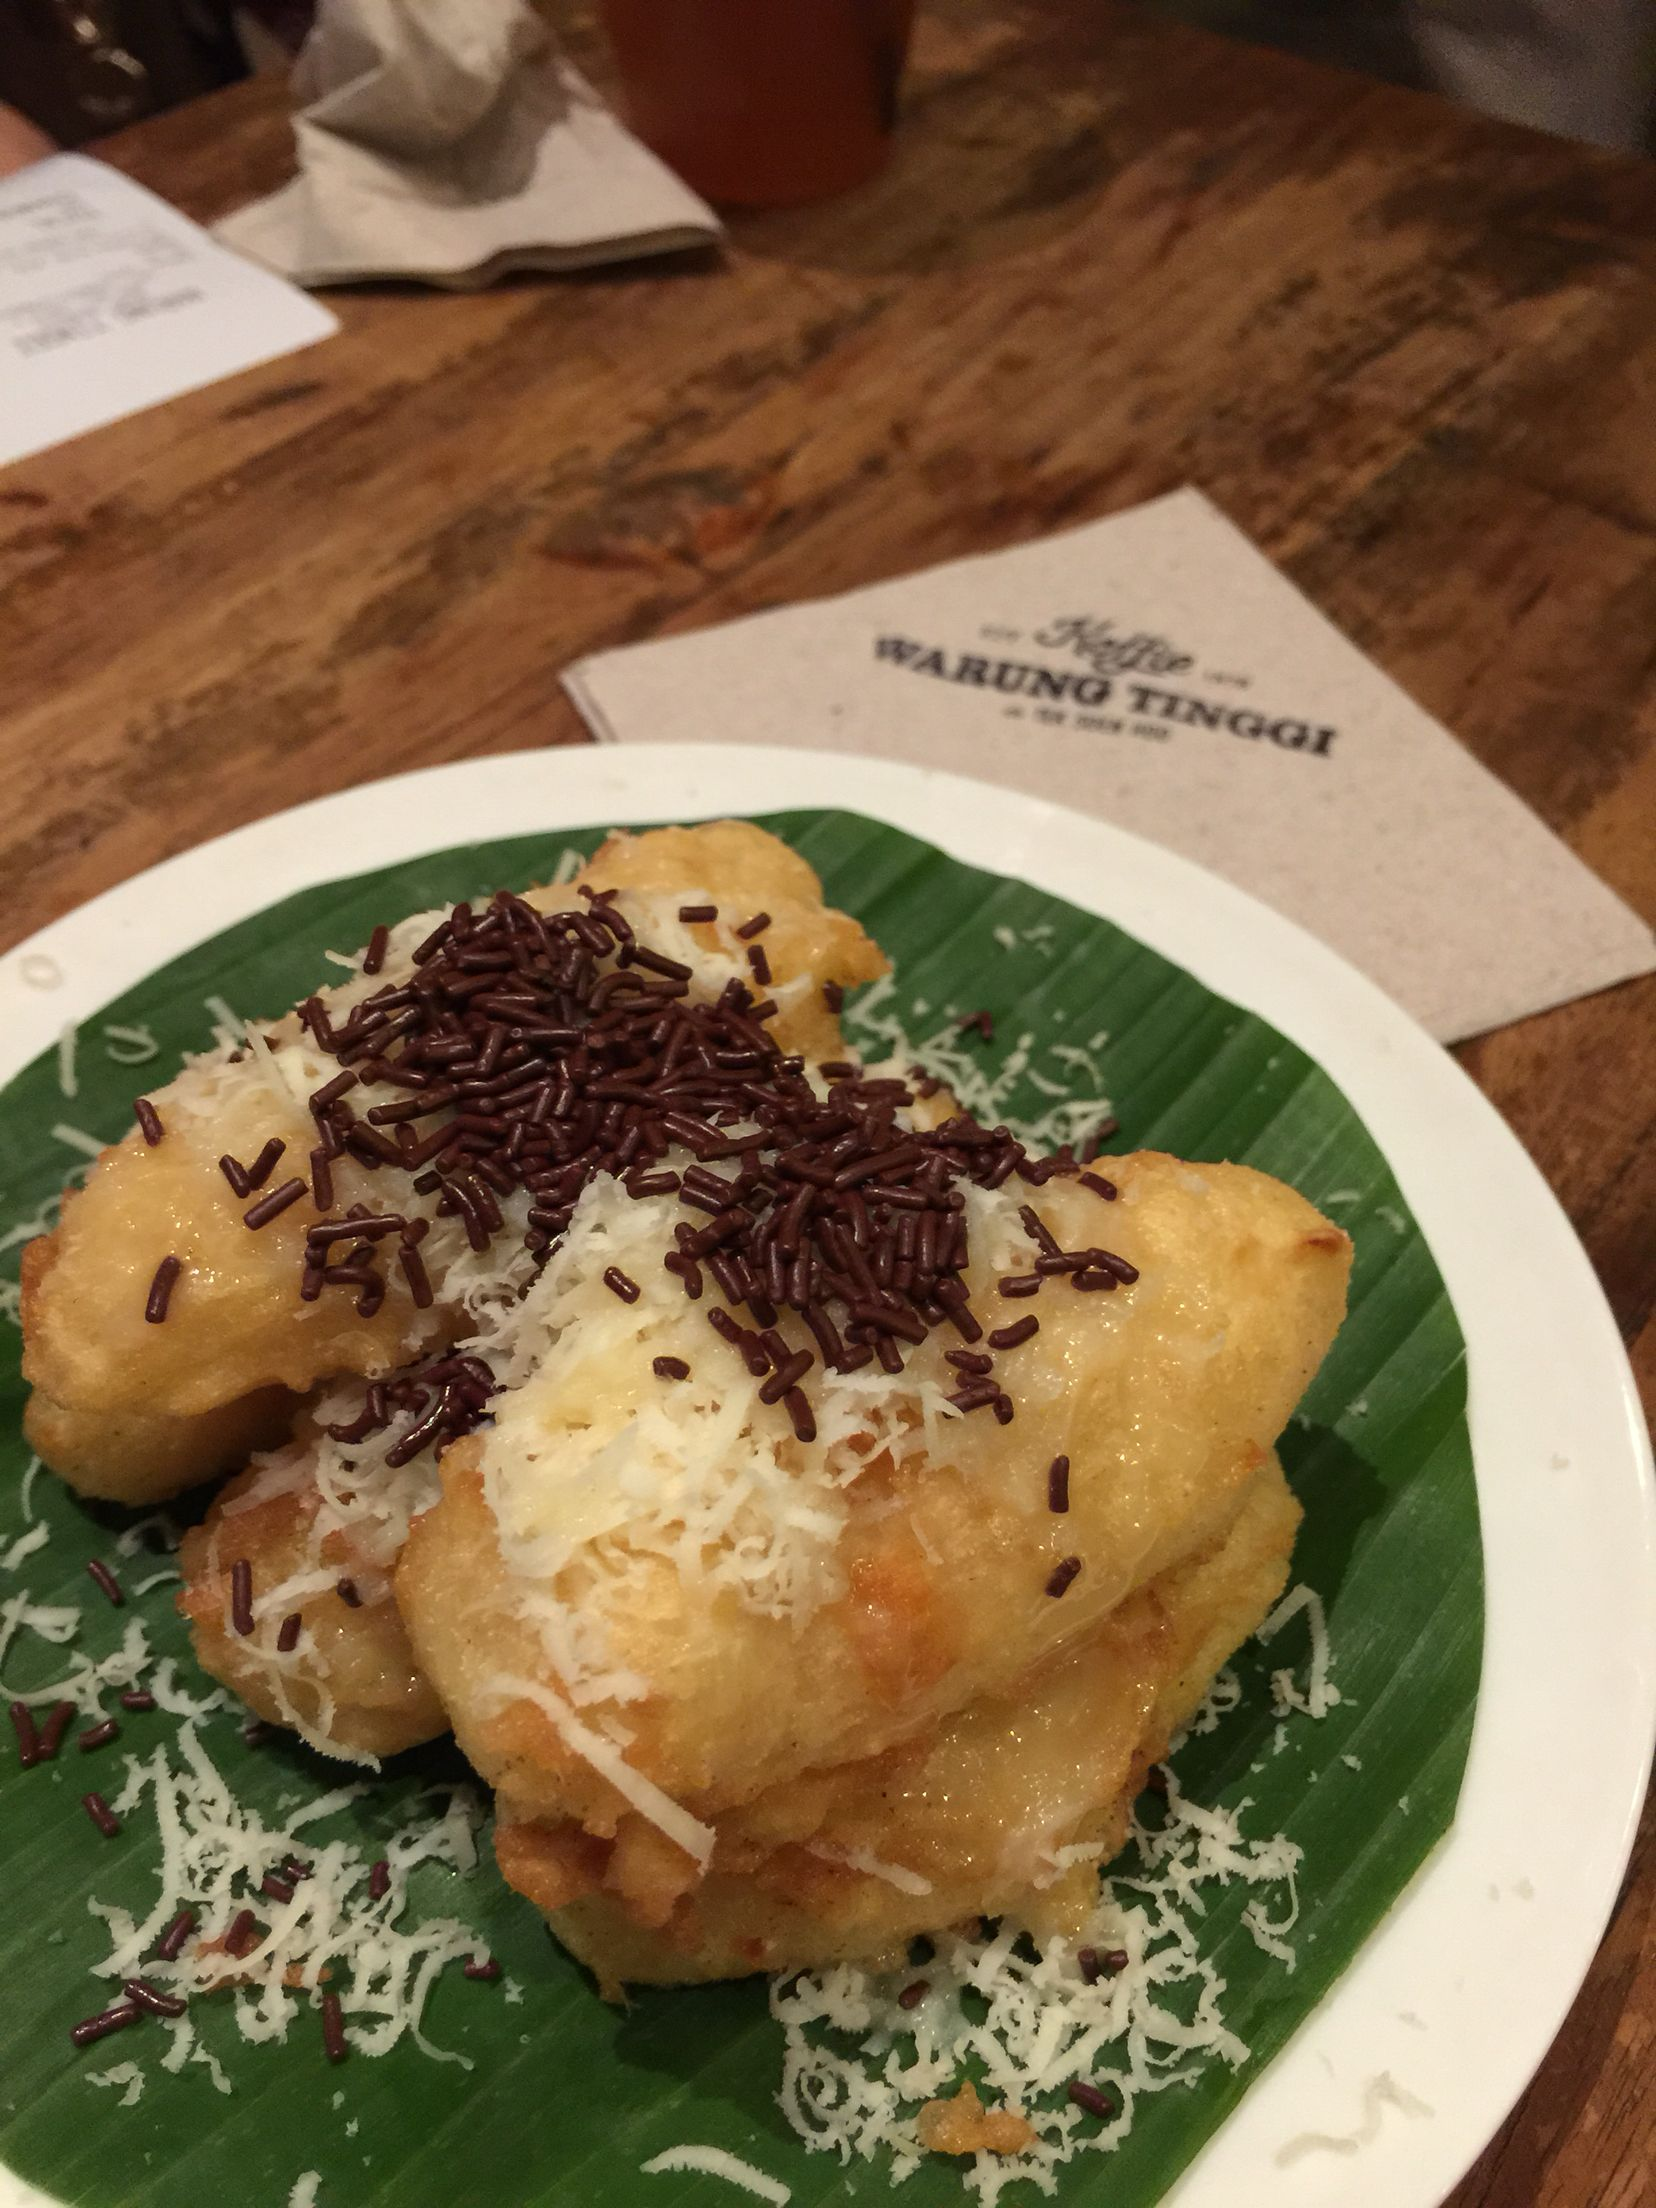 Fried Tape Cassava With Cheese Chocolate Vermicelli Warung Tinggi Jakarta Food Vermicelli Cheese